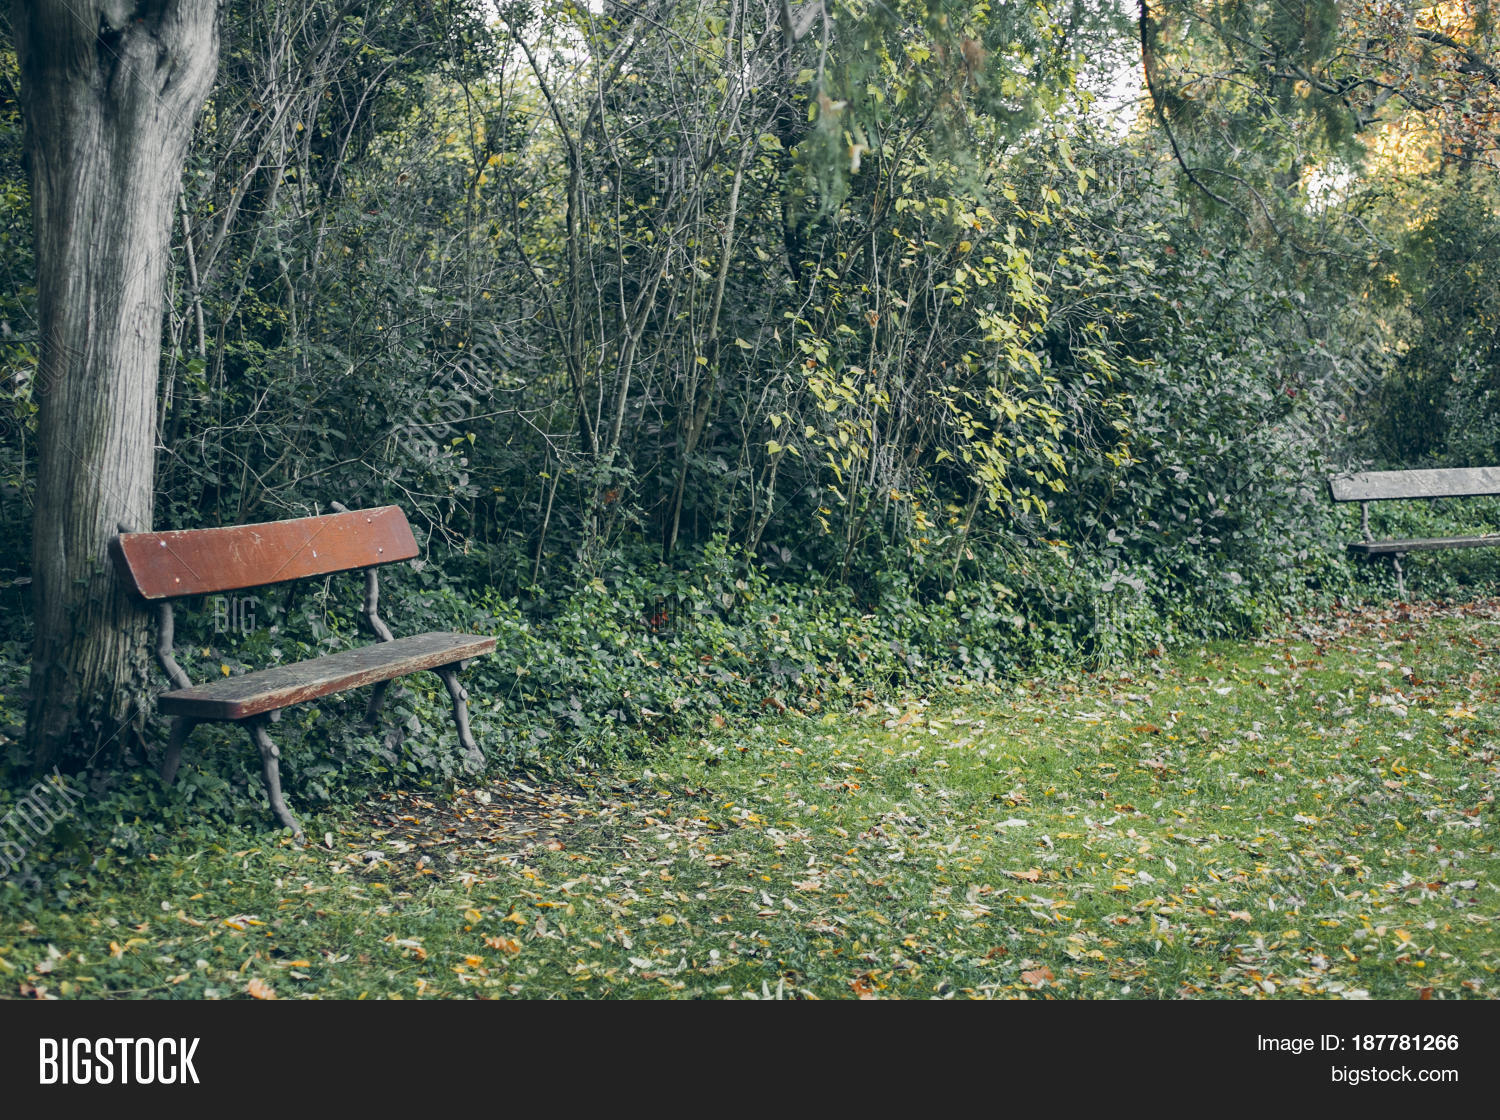 Old Wooden Bench Image Photo Free Trial Bigstock